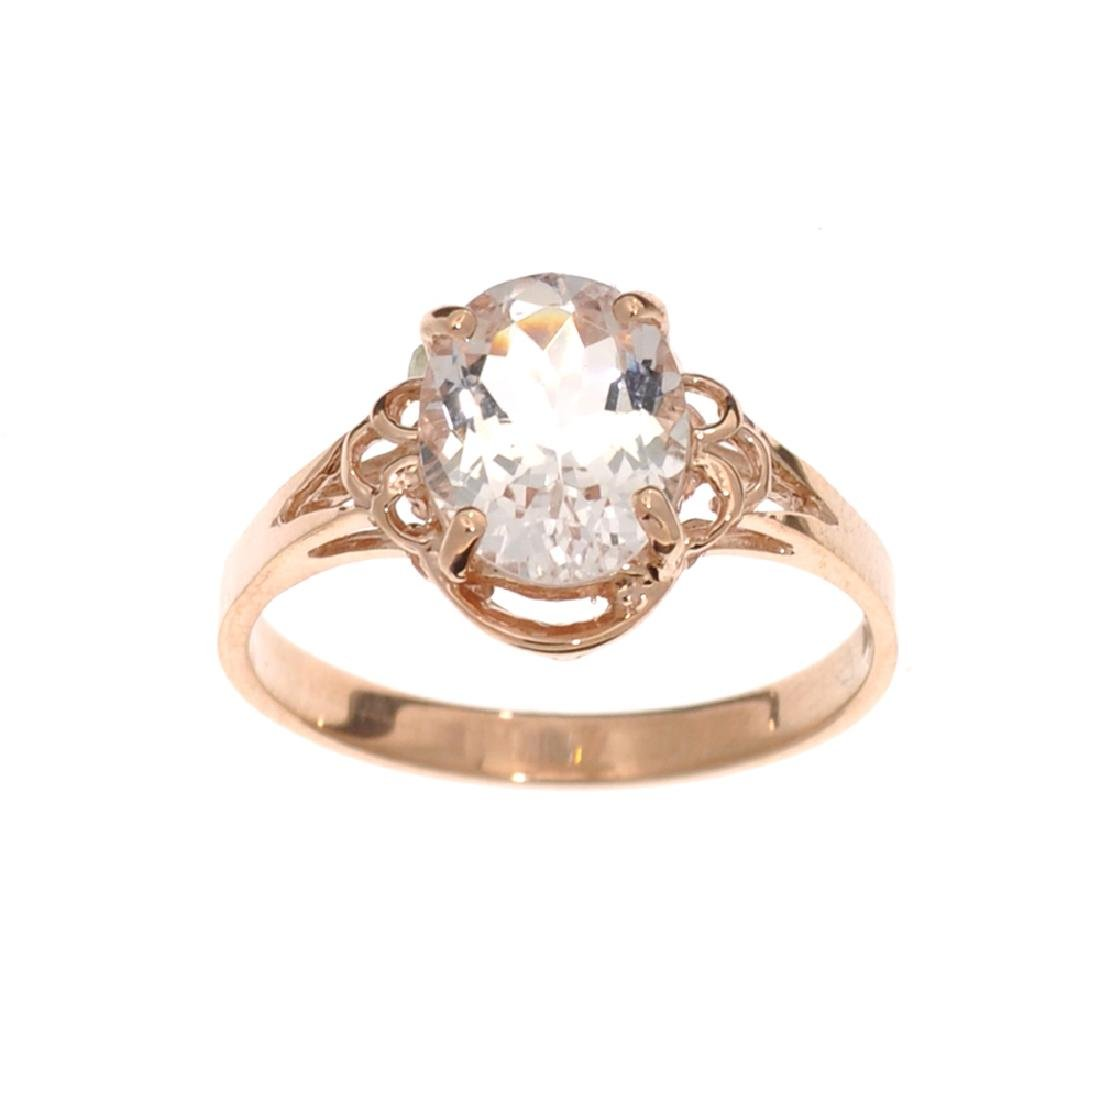 APP: 1.4k Fine Jewelry 14 KT Gold, 1.65CT Oval Cut